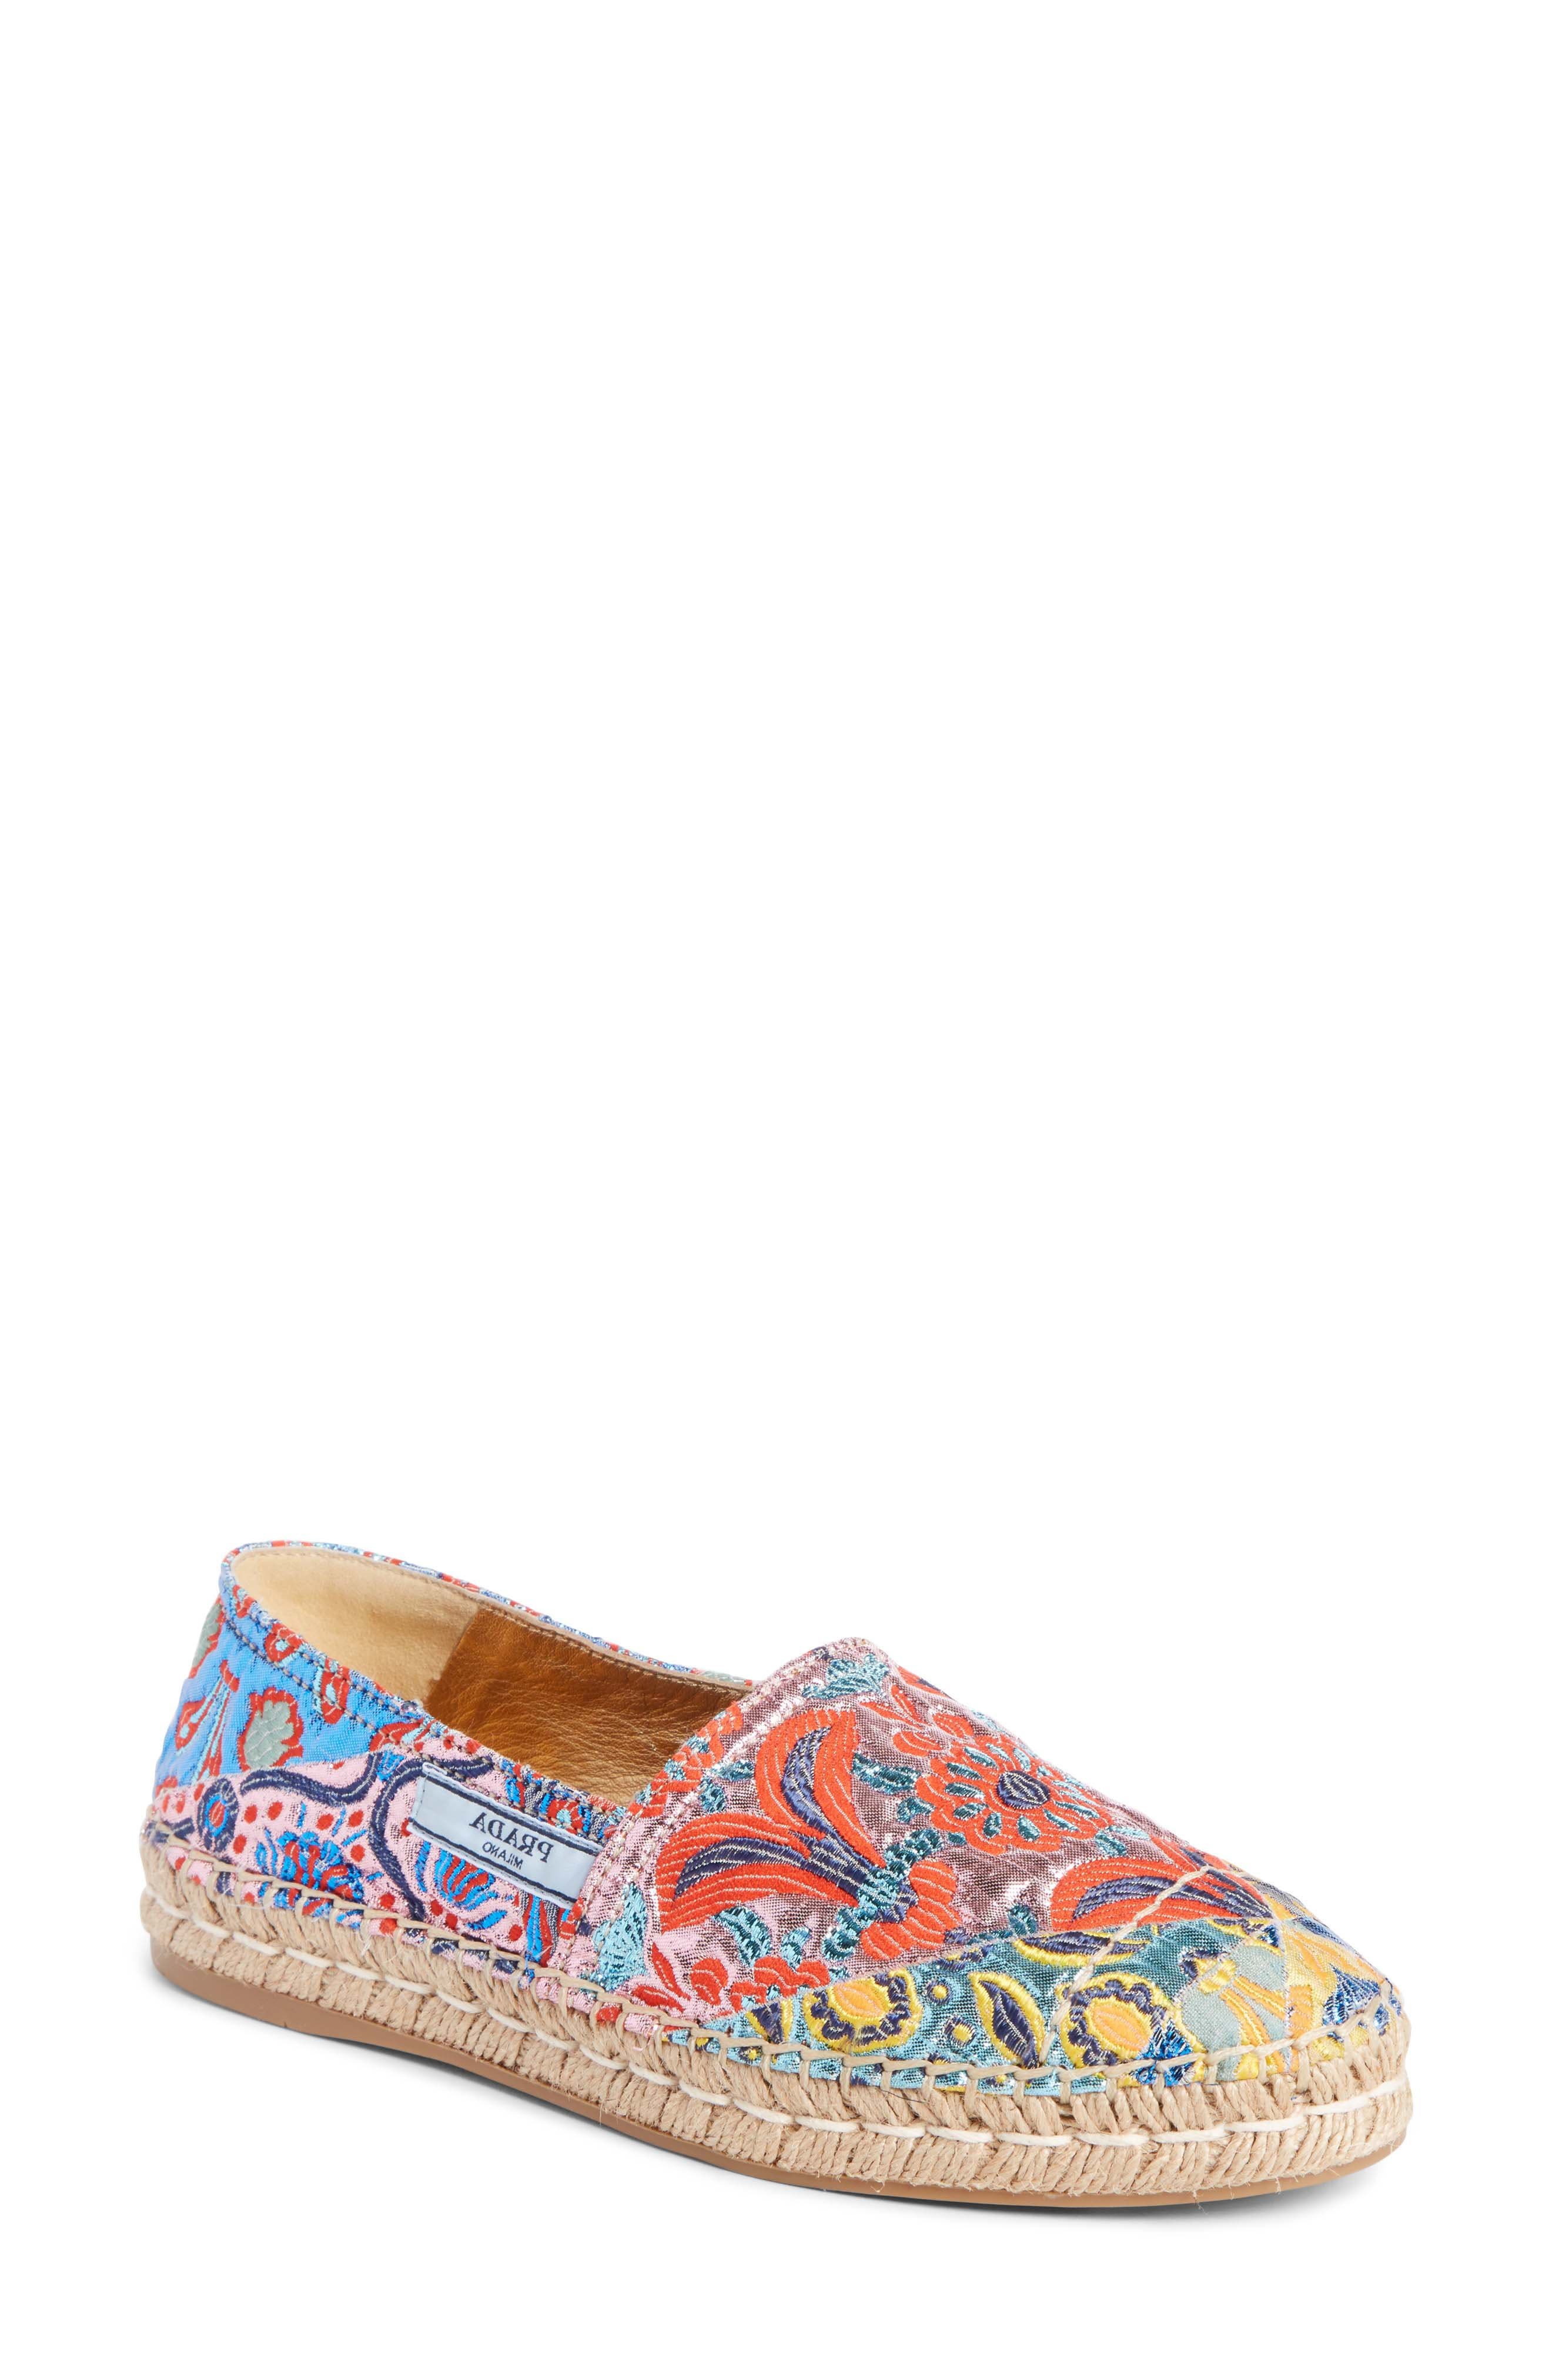 Floral Embroidered Espadrille Flat,                             Main thumbnail 1, color,                             650